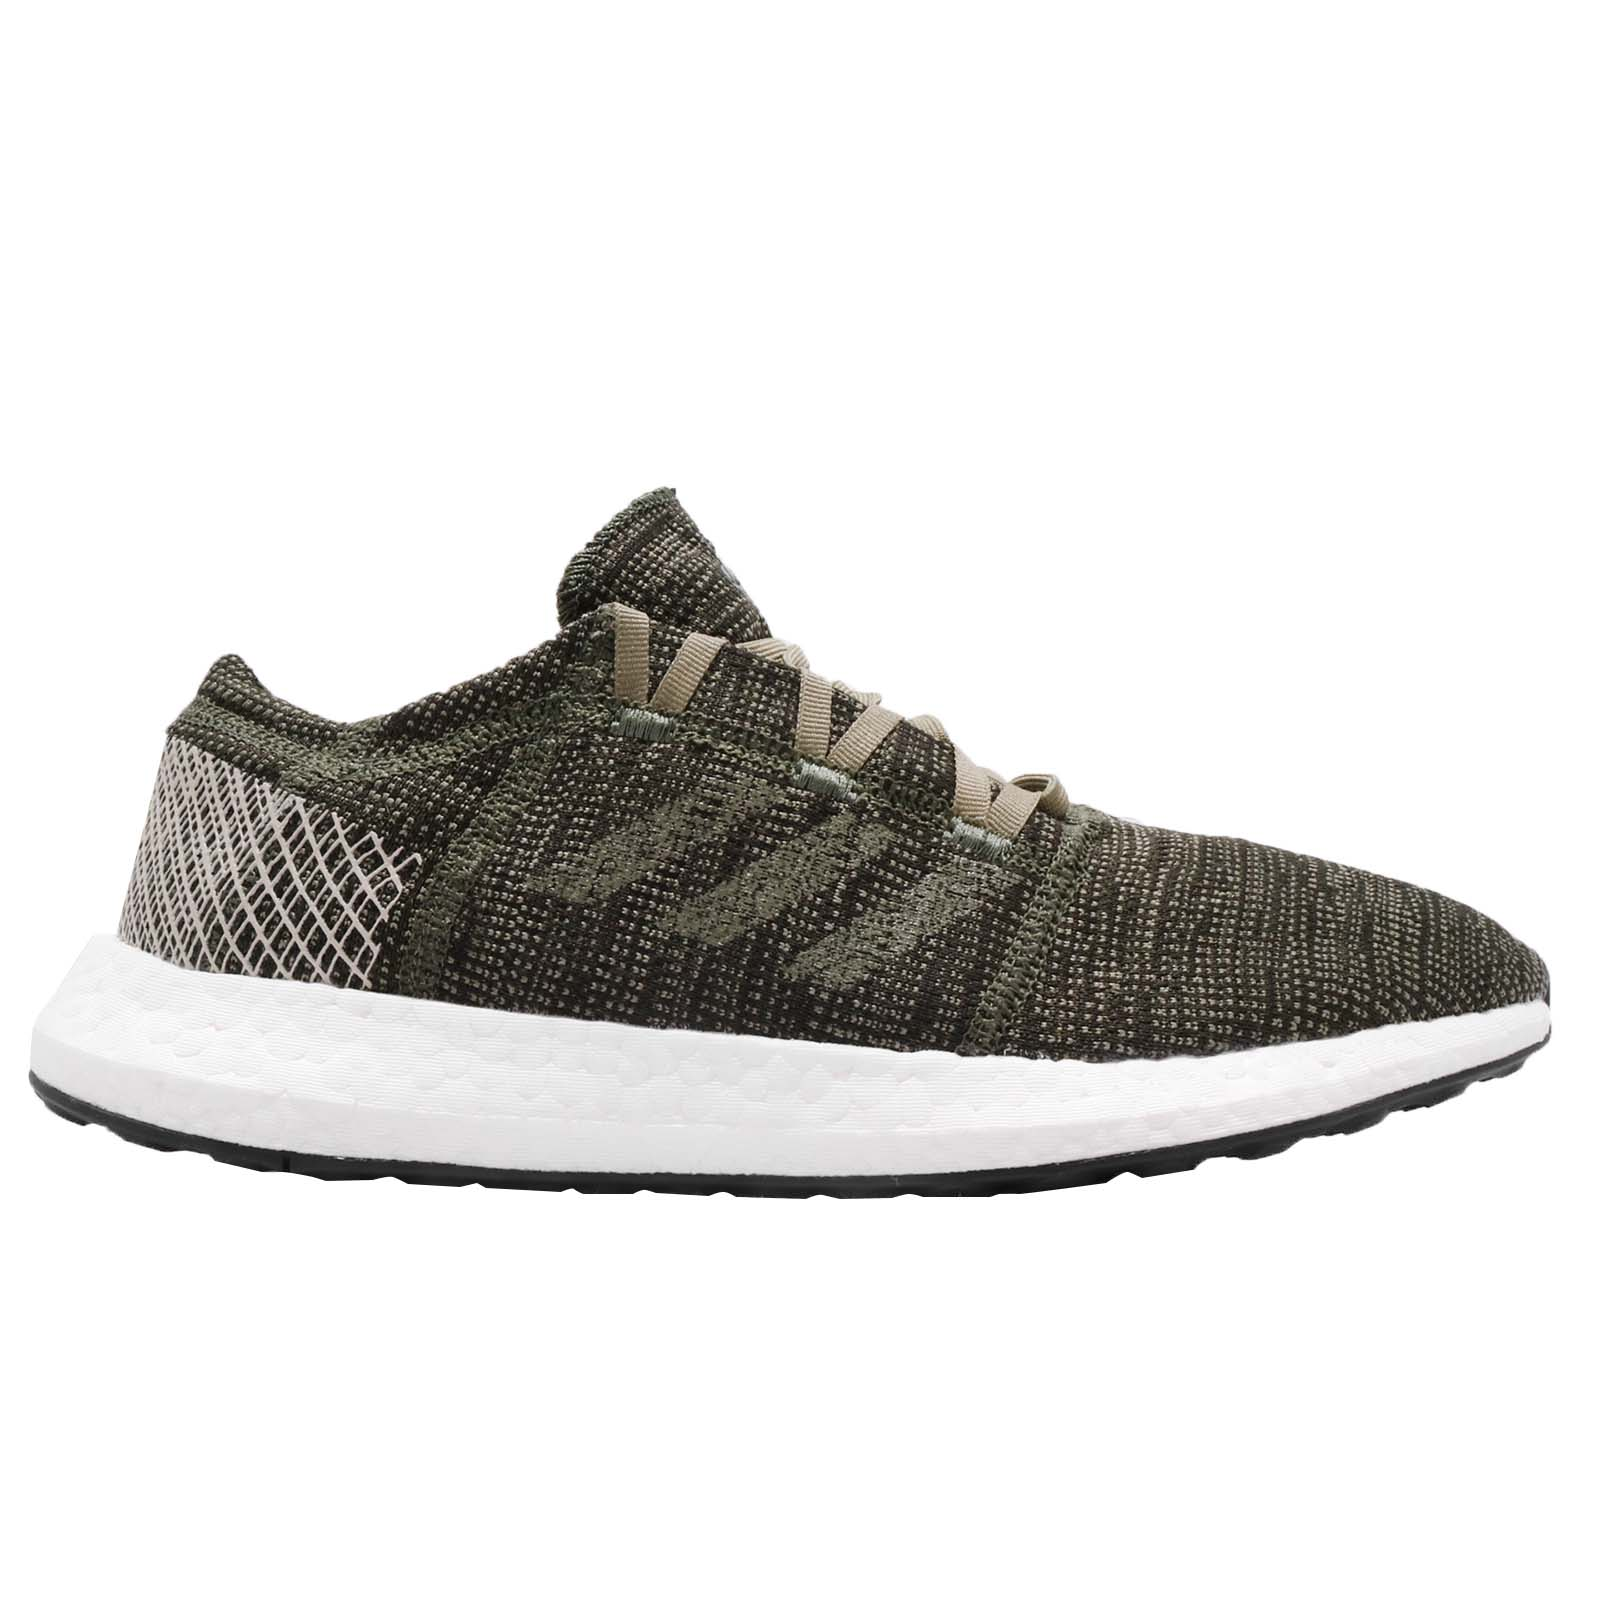 8e9892ee34c04 adidas PureBOOST GO Base Green Clear Brown Men Running Shoes ...